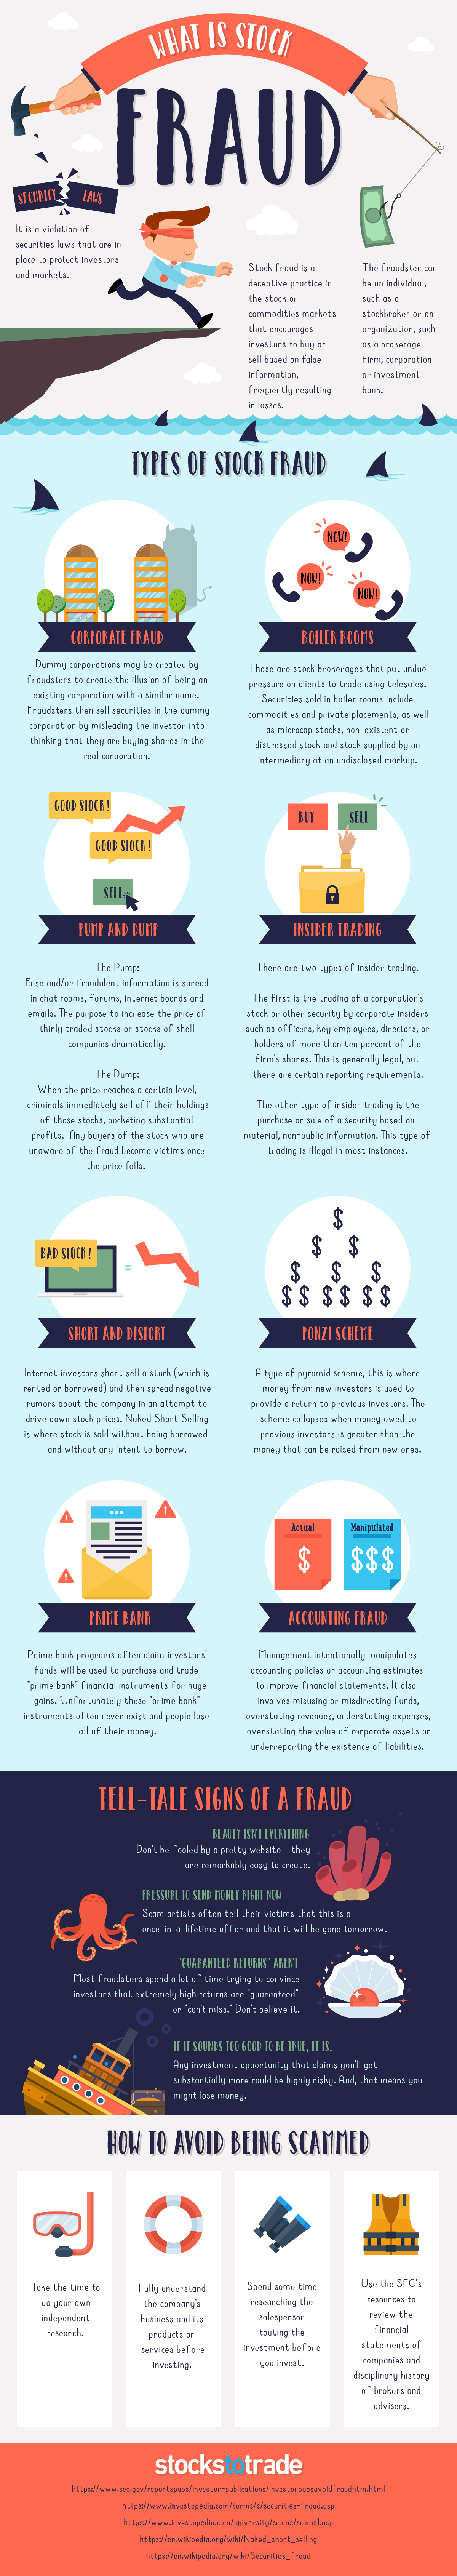 Infographic: What is Stock Fraud?